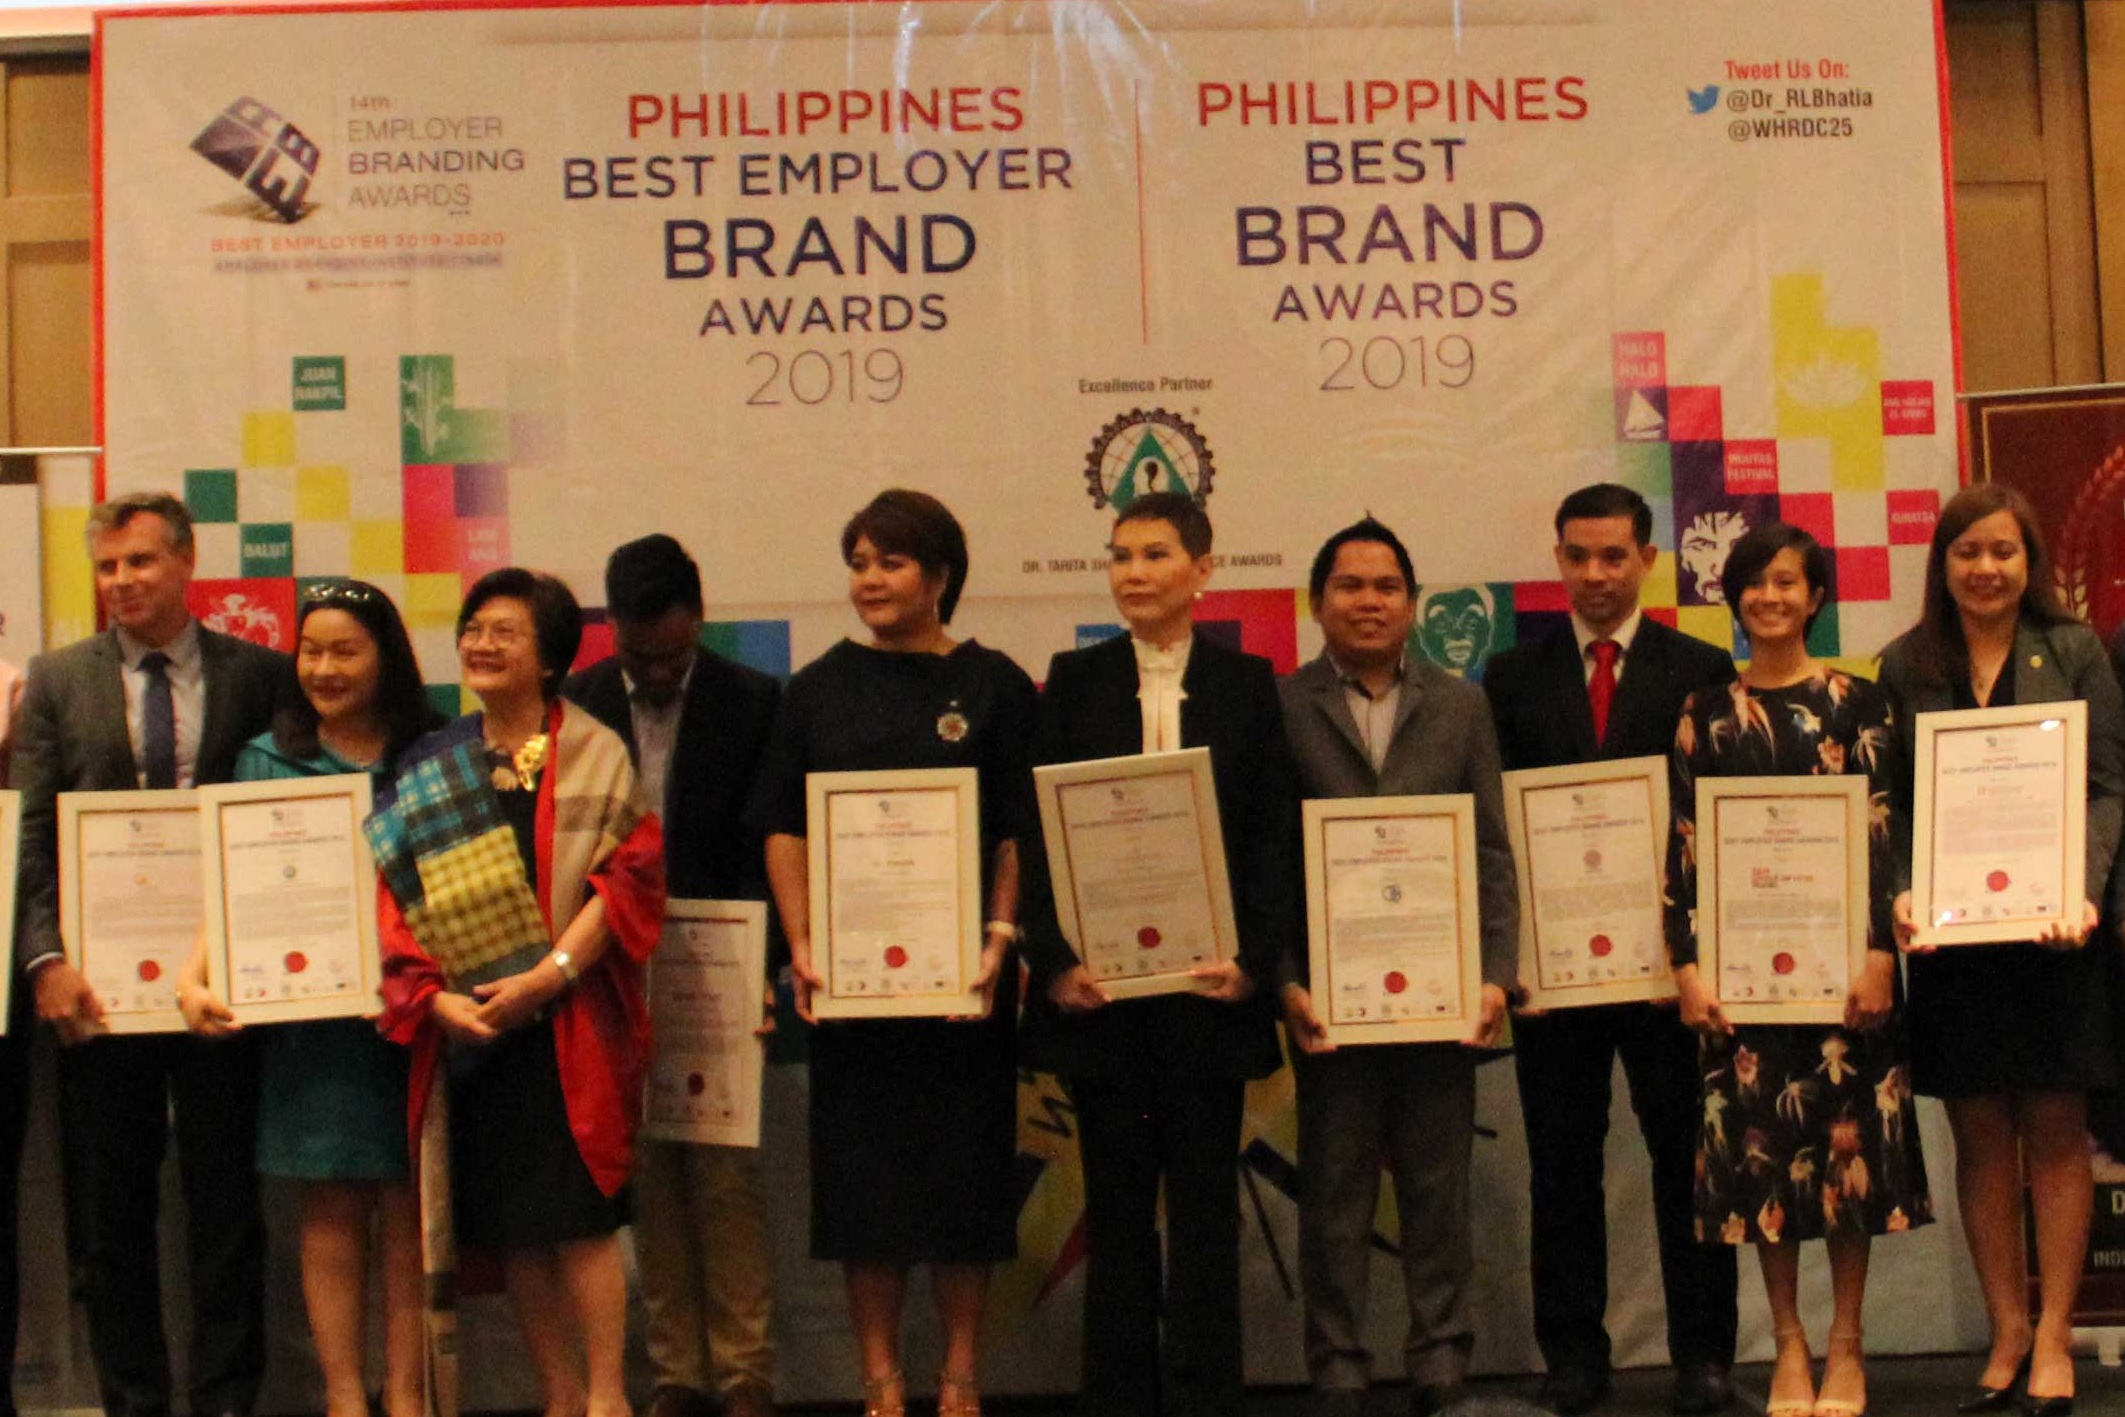 Paulo Tatad (3rd from right), recruitment marketing and sourcing head, receives the award on behalf of ABS-CBN